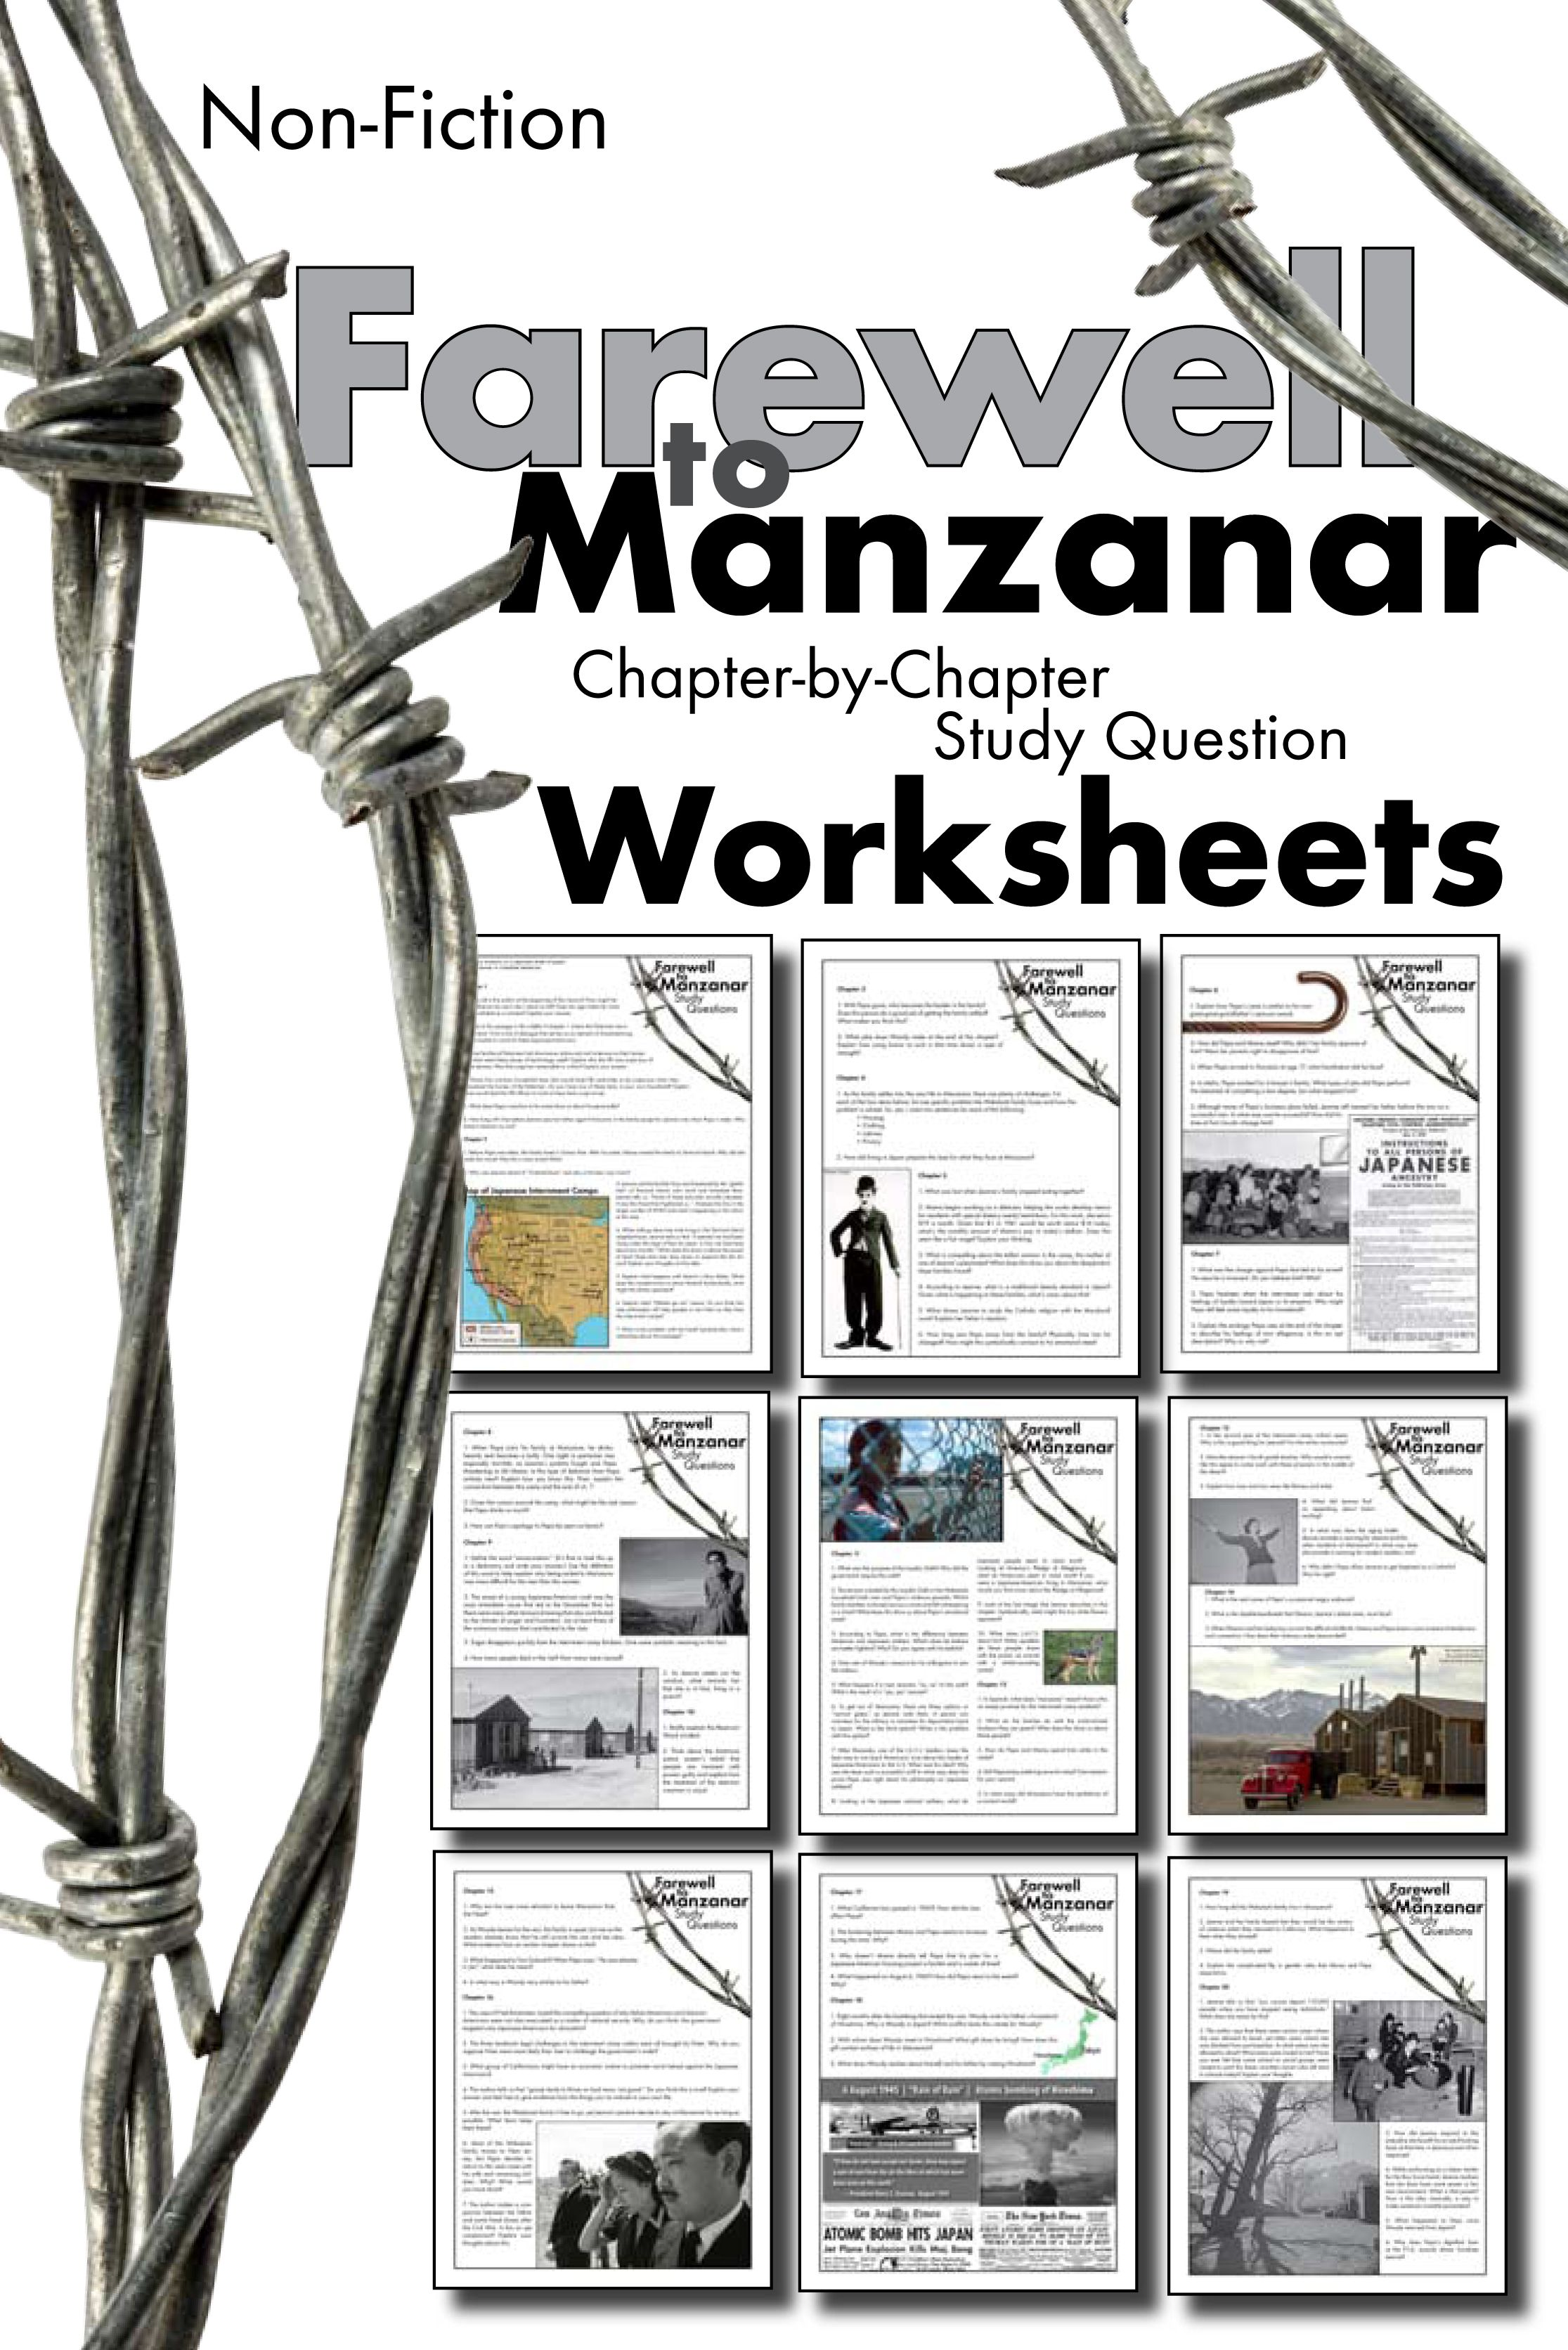 Free Worksheet Farewell To Manzanar Worksheets 17 best images about farewell to manzanar on pinterest primary sources the author and camps